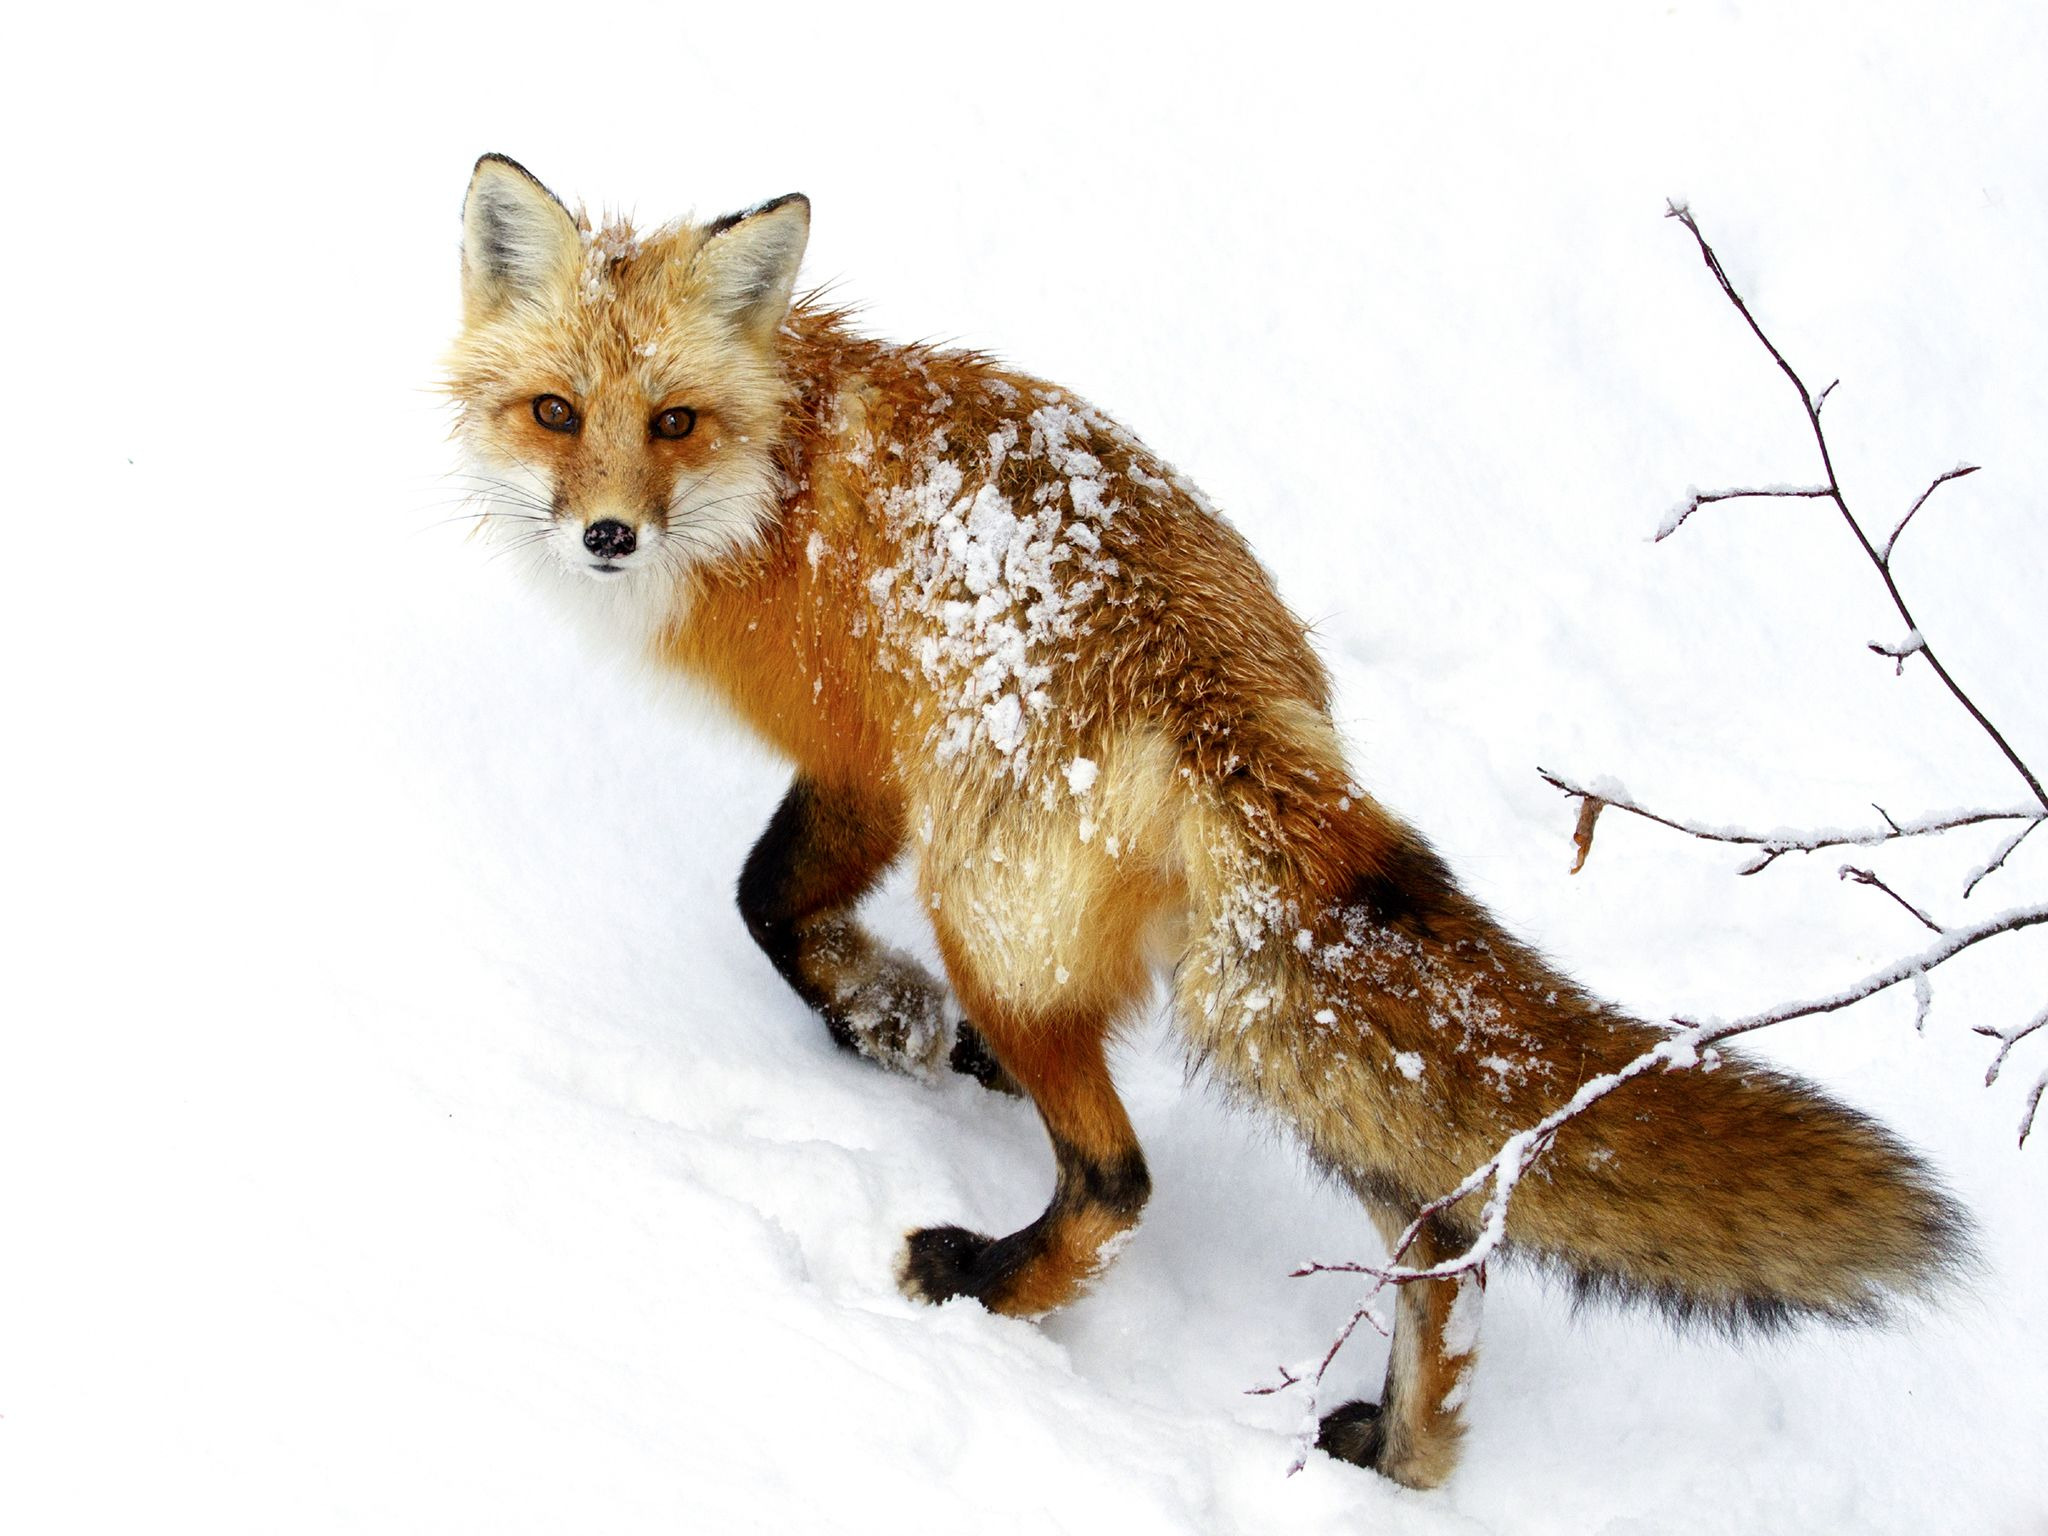 A Red fox in snow. This image is from Winter Wonderland. [Photo of the day - 十二月 2015]